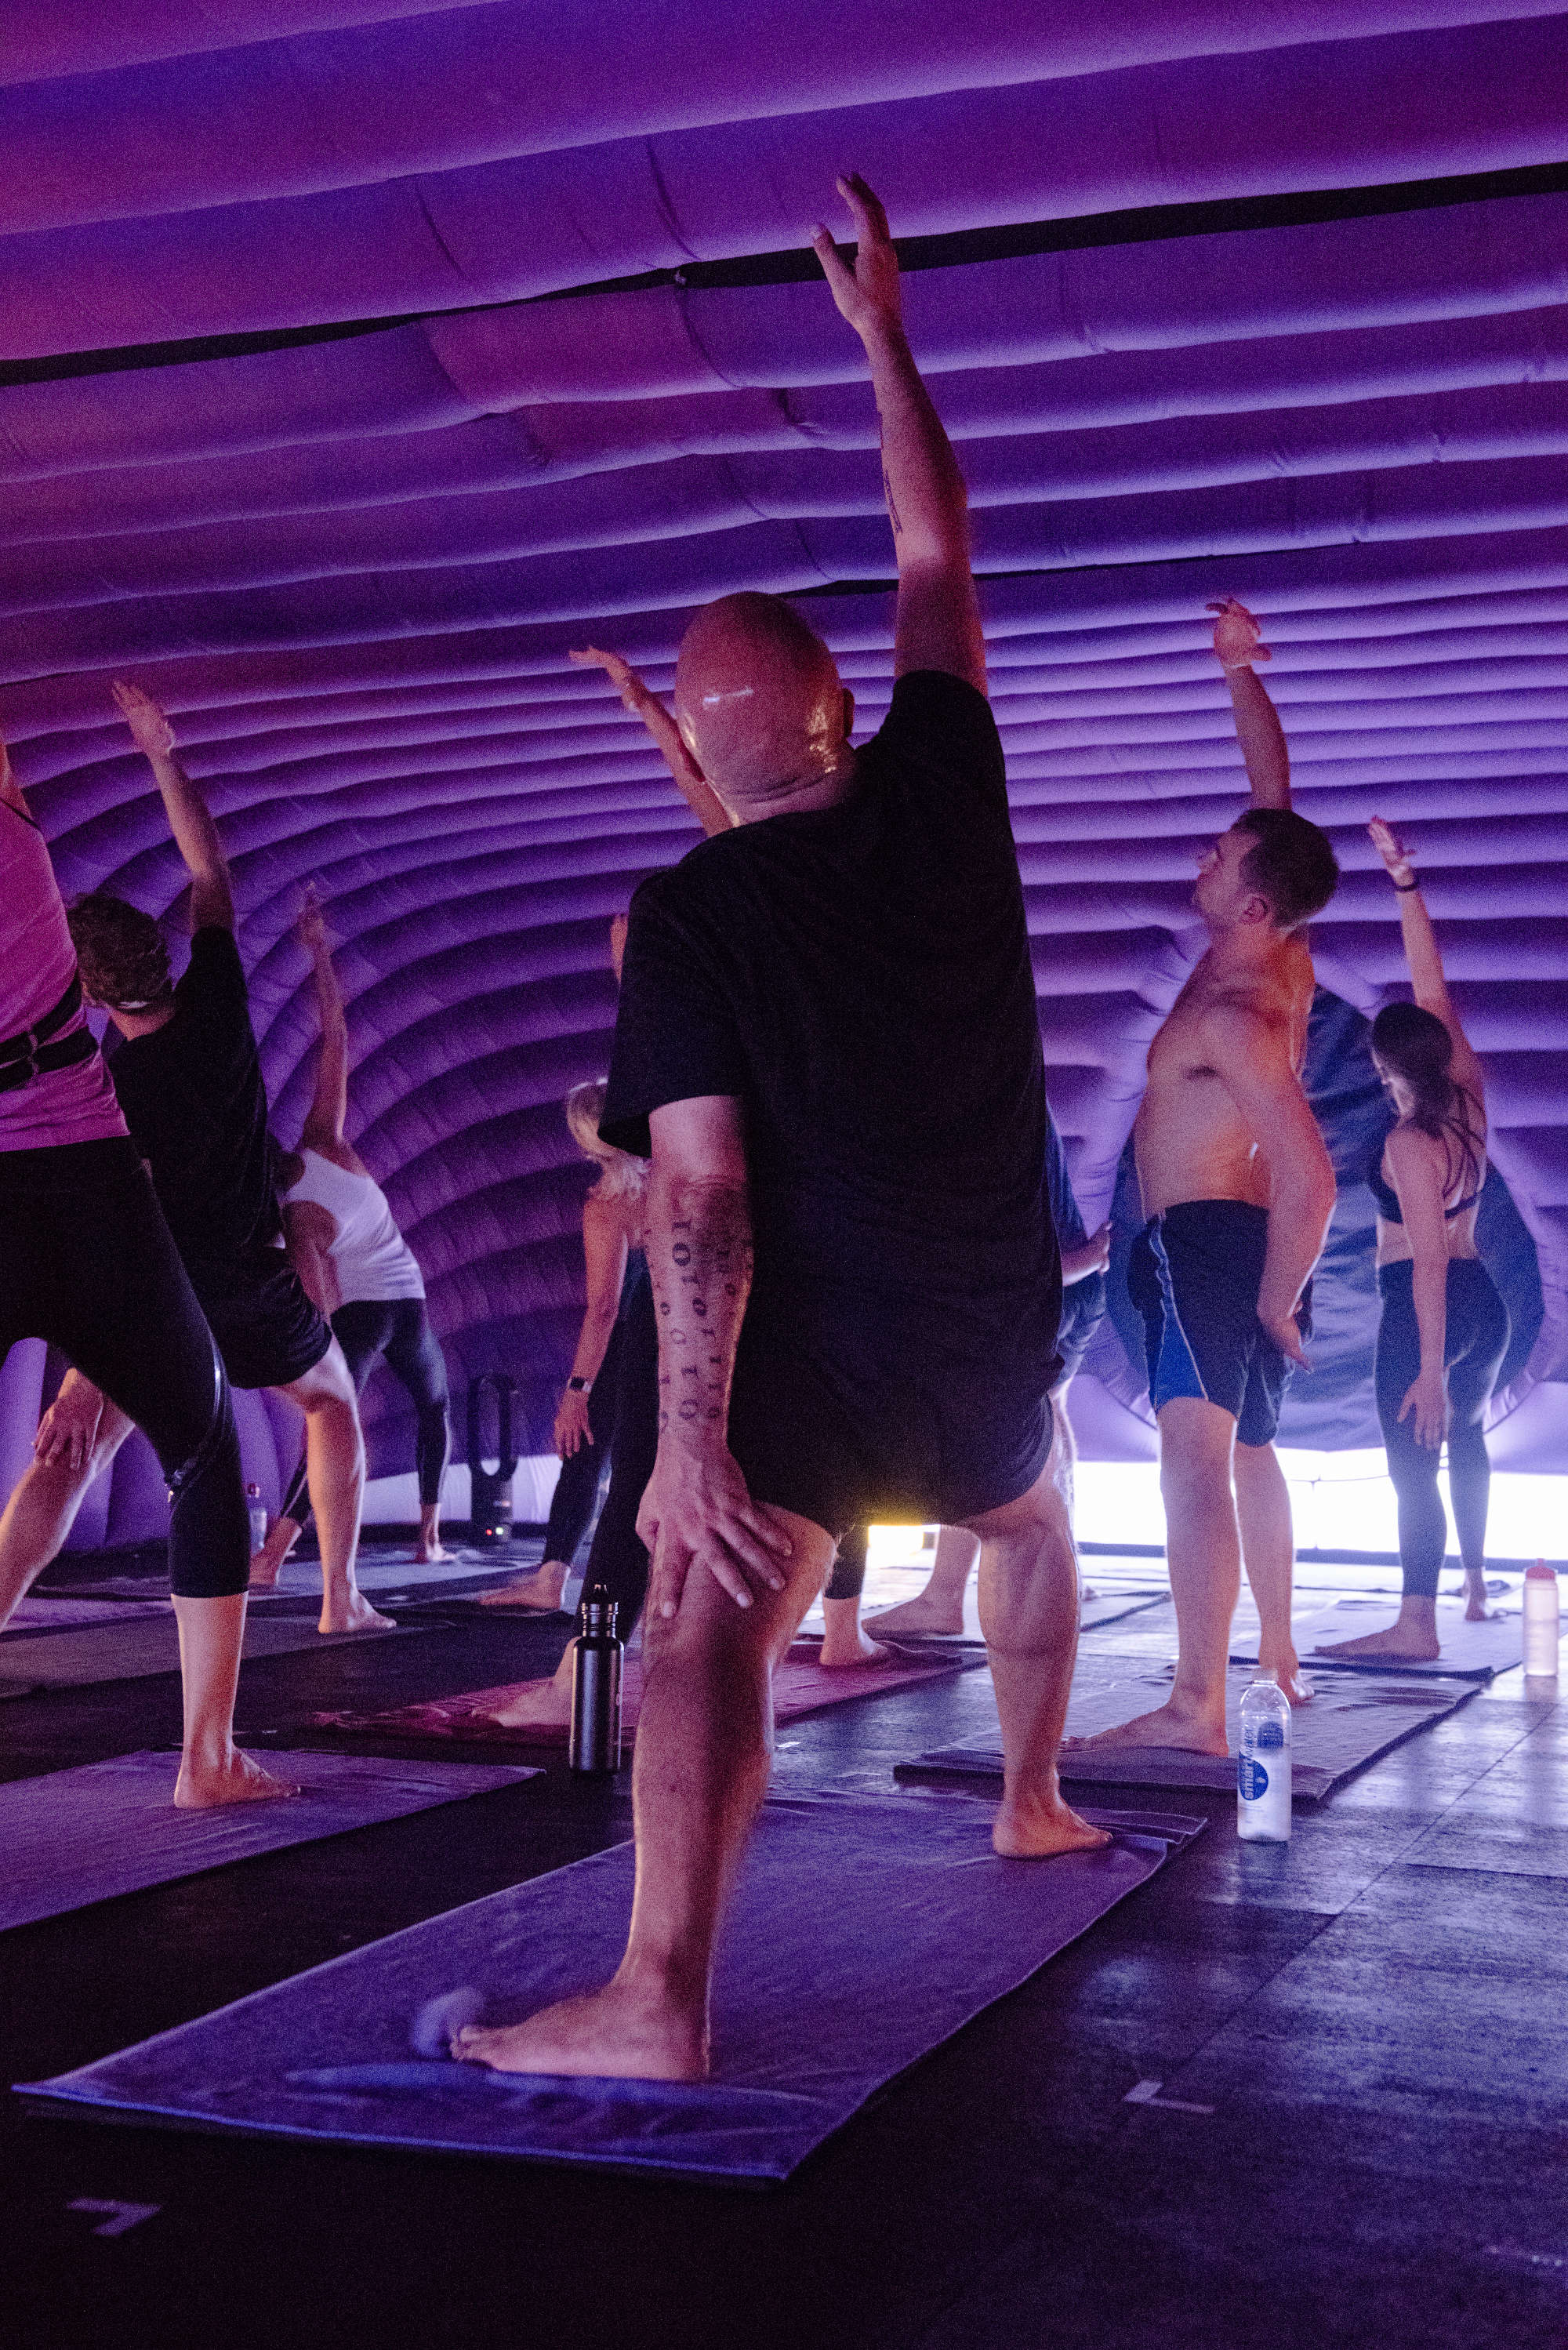 Bikram Yoga Amsterdam Introducing Hotpod Yoga An Innovative Mobile Bikram